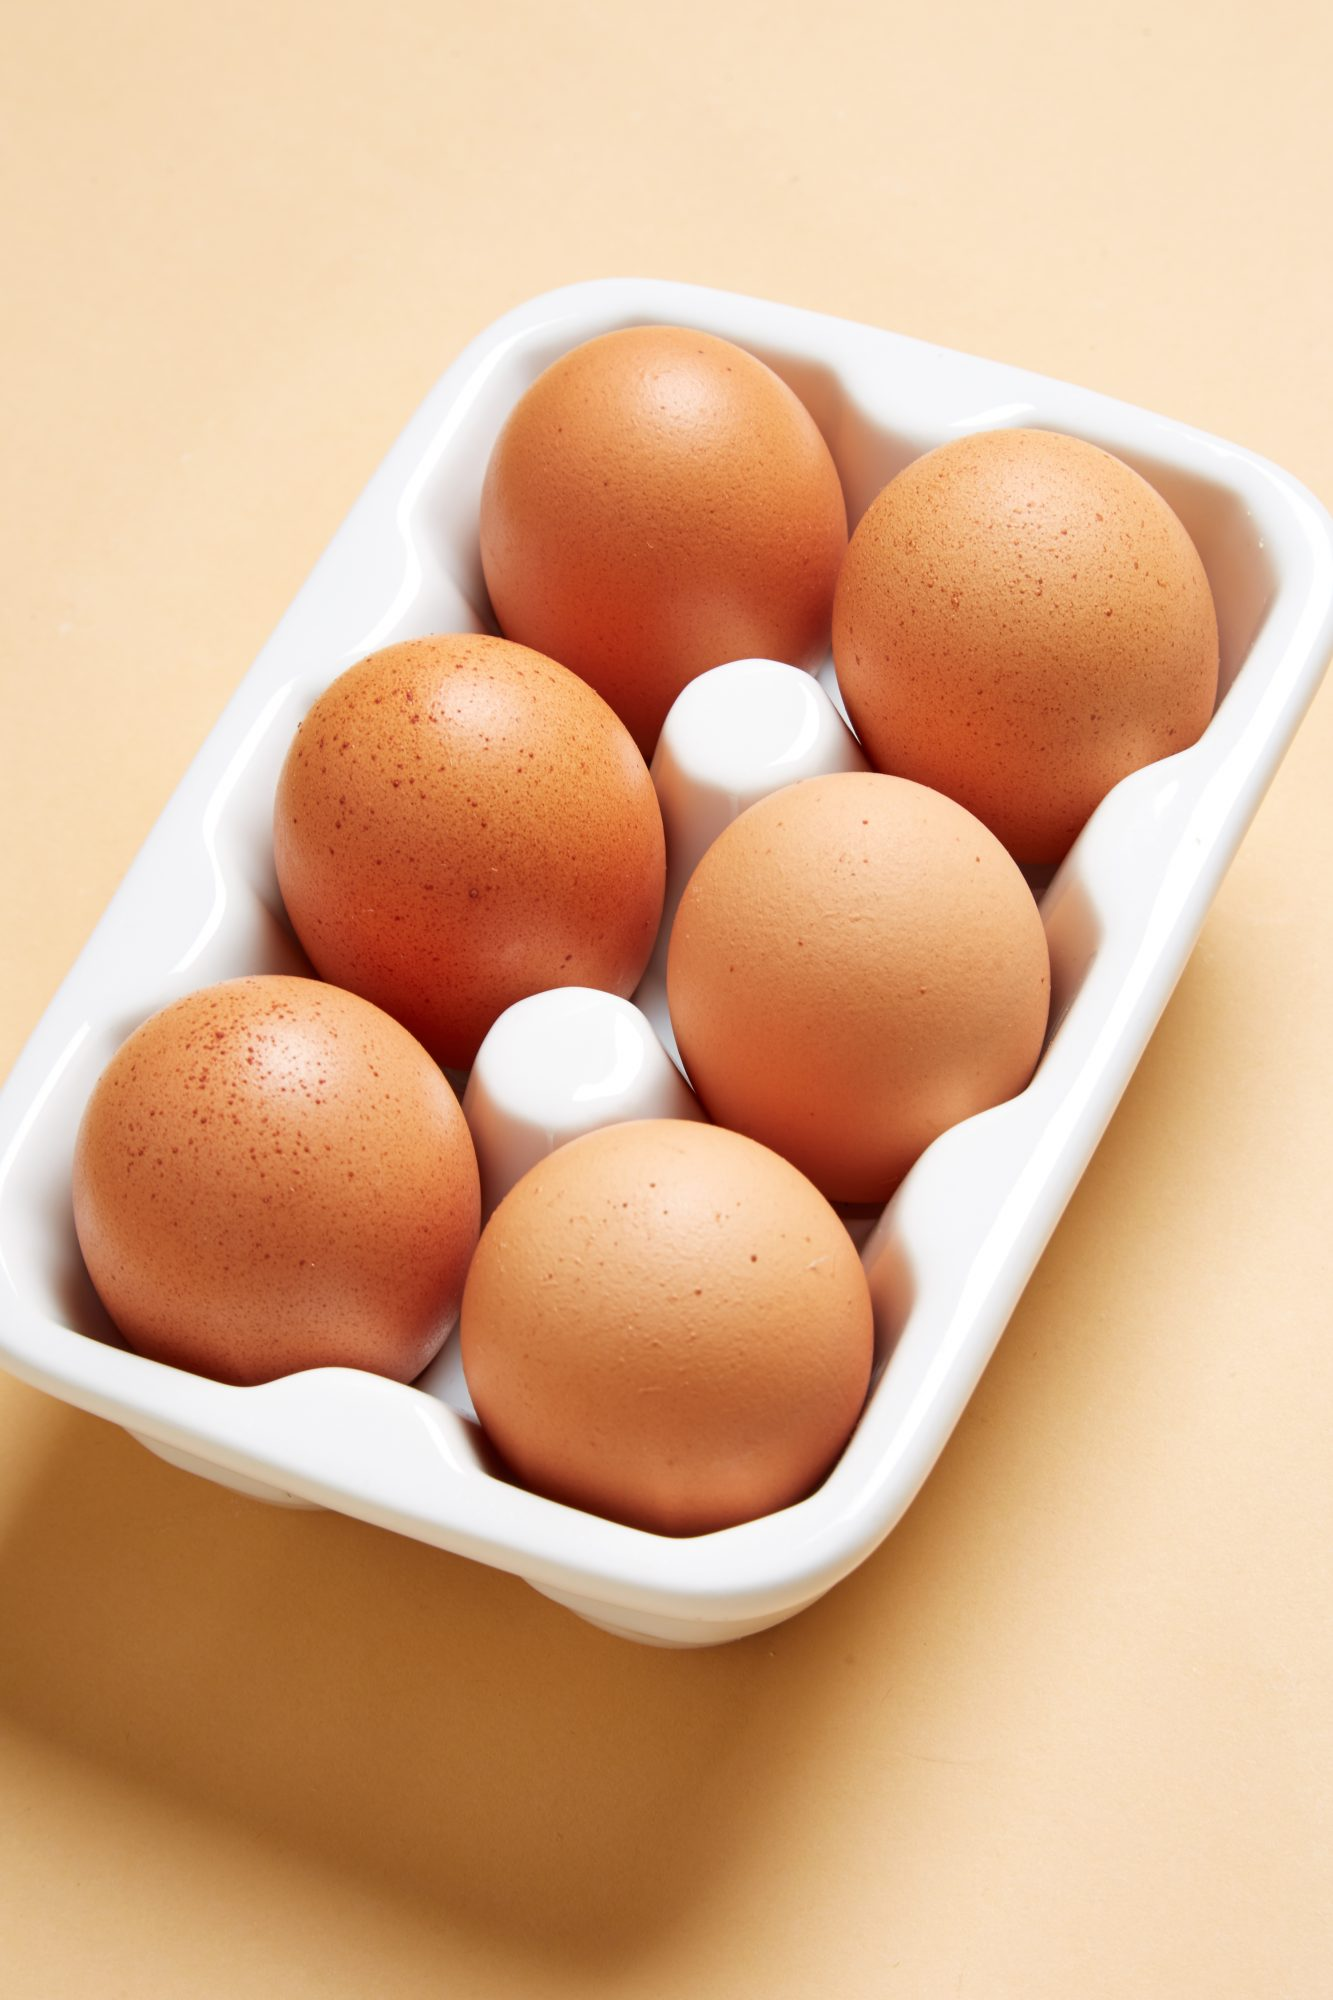 healthy and filling, health food, diet, nutrition, time.com stock, eggs